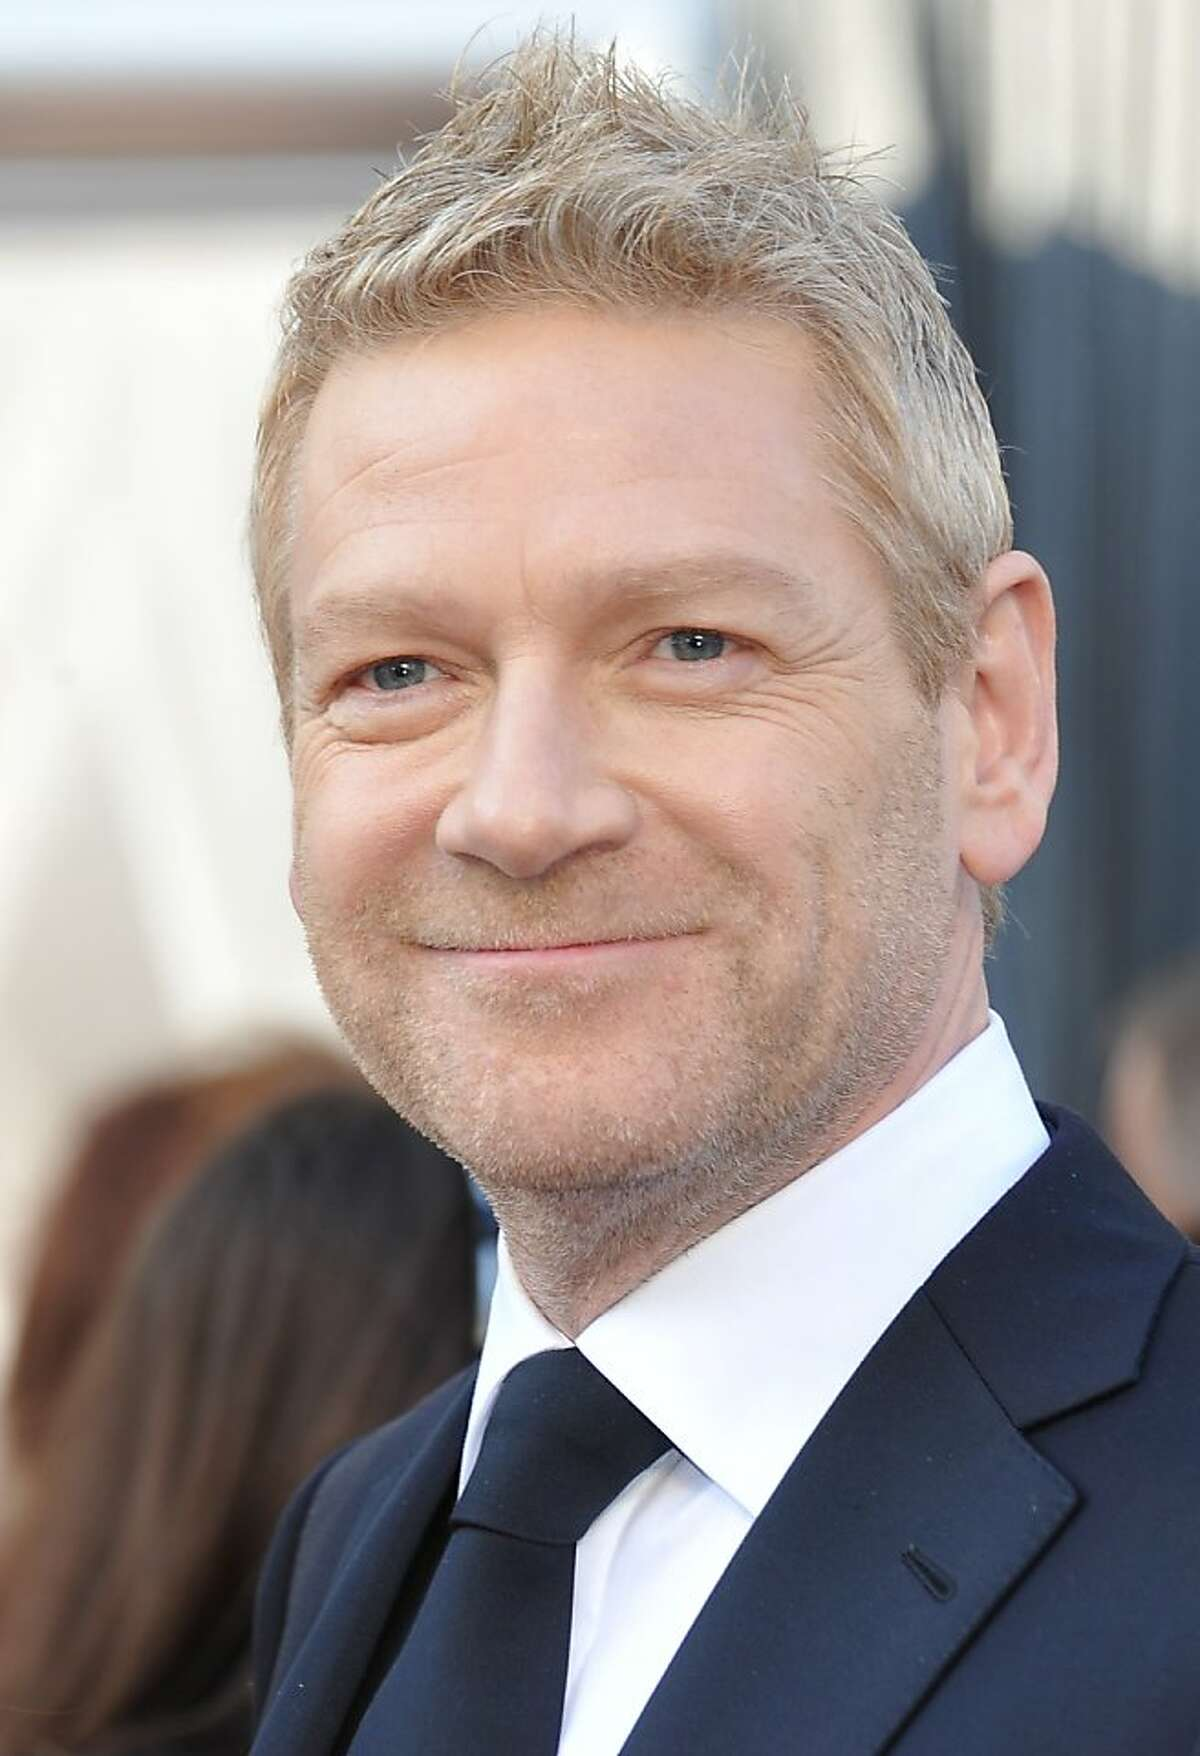 Actor Kenneth Branagh arrives on the red carpet for the 84th Annual Academy Awards on February 26, 2012 in Hollywood, California. AFP PHOTO Joe KLAMAR (Photo credit should read JOE KLAMAR/AFP/Getty Images)